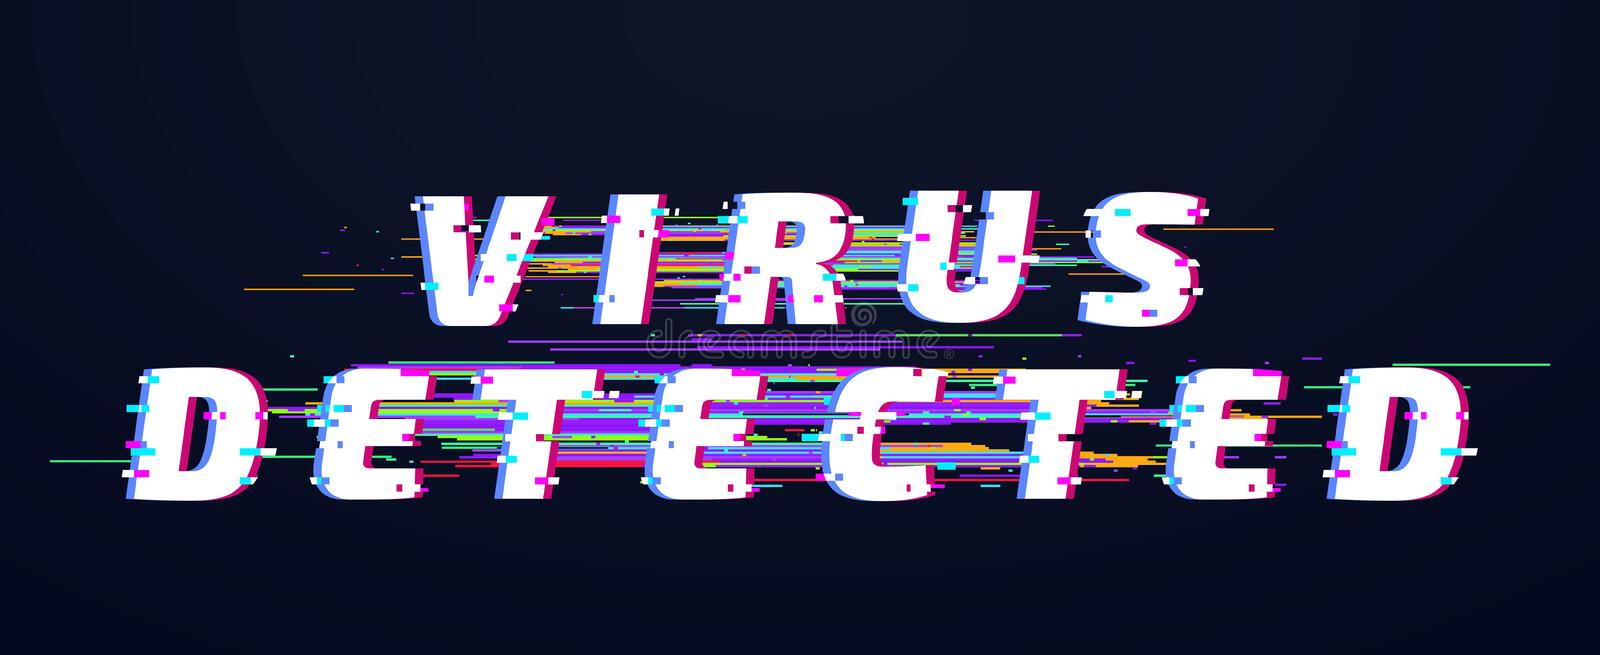 Glitch font.Glitch font. Virus detected glitched digital letters. Old glitch tv distortion abstract vhs futuristic virus stock illustration